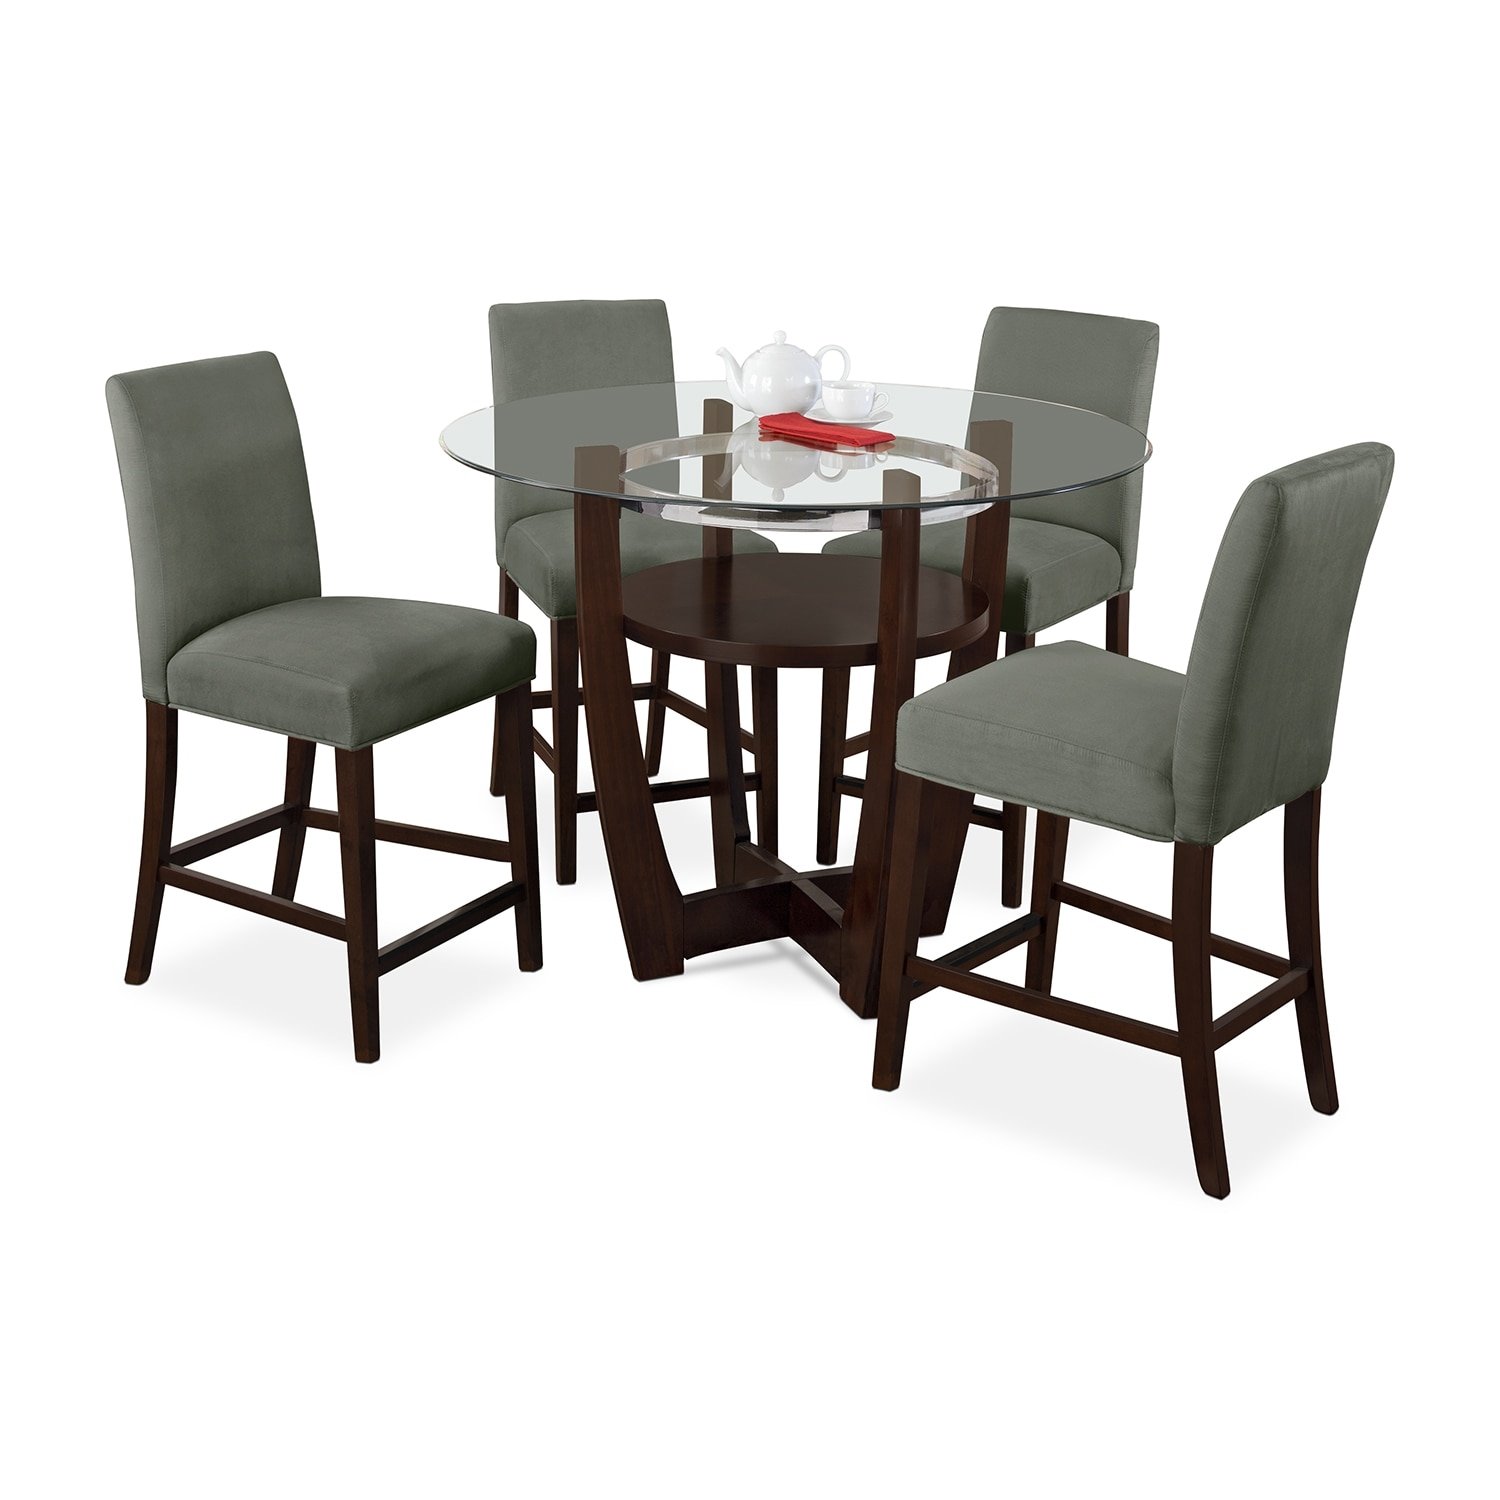 Alcove counter height dinette with 4 side chairs sage for Side chairs for dining table